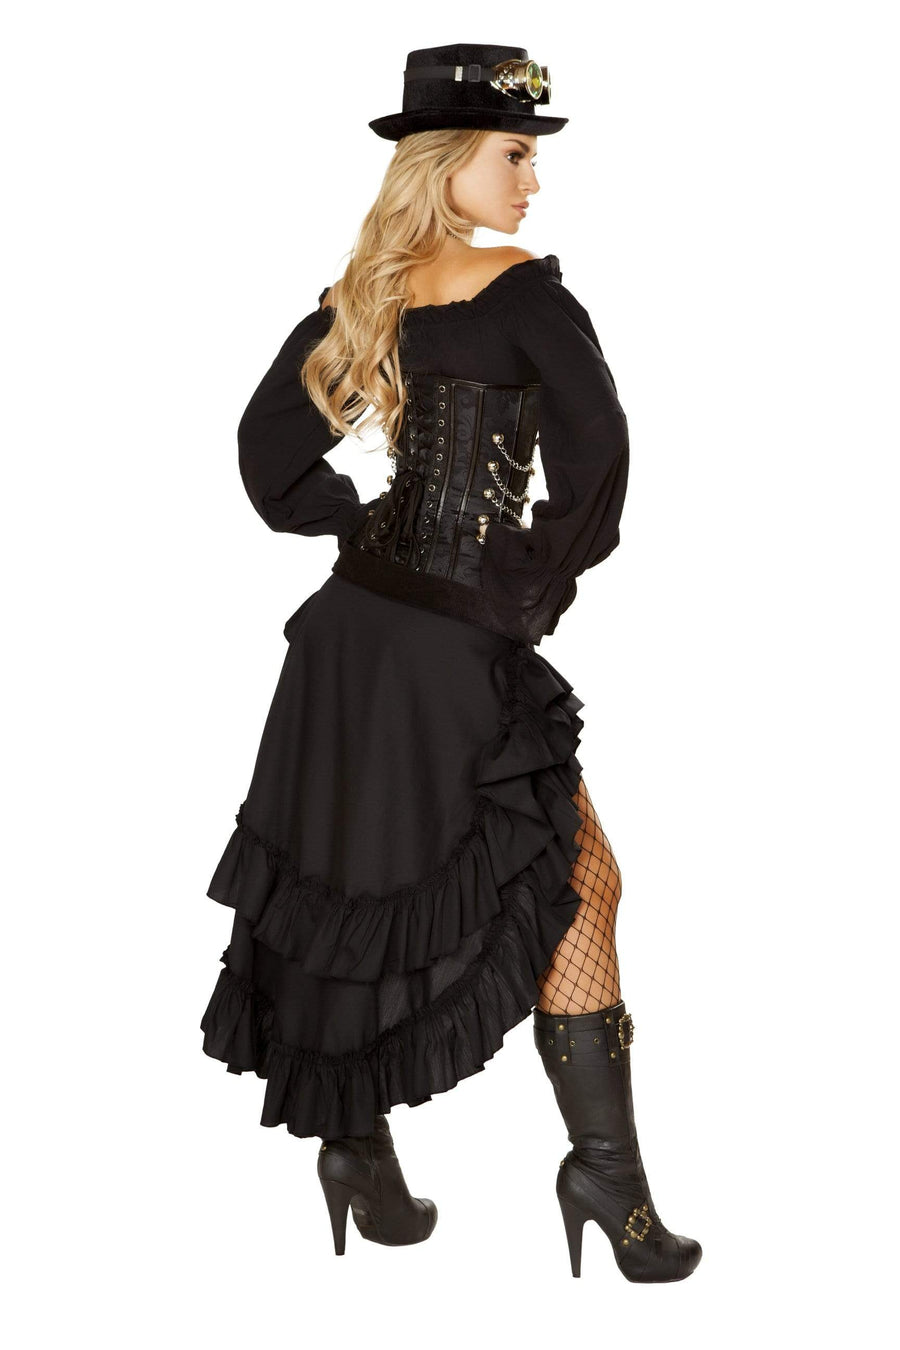 Roma Small / Black 6pc Victorian Steam Maiden SHC-4856-S-R Apparel & Accessories > Costumes & Accessories > Costumes